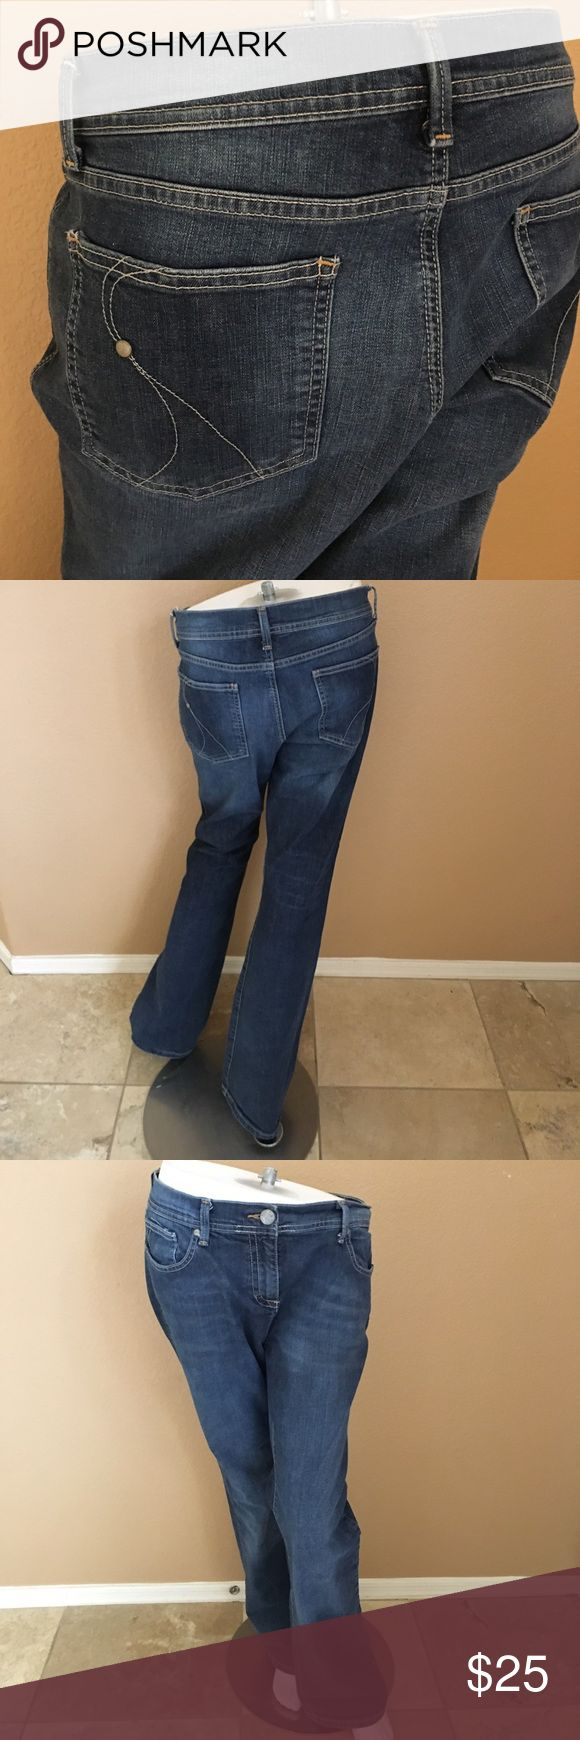 INC International Concepts Jeans! 188. Women's INC International Concepts Jeans! Size 14, inseam 32 inches! In excellent condition only worn a couple times! INC International Concepts Jeans Boot Cut